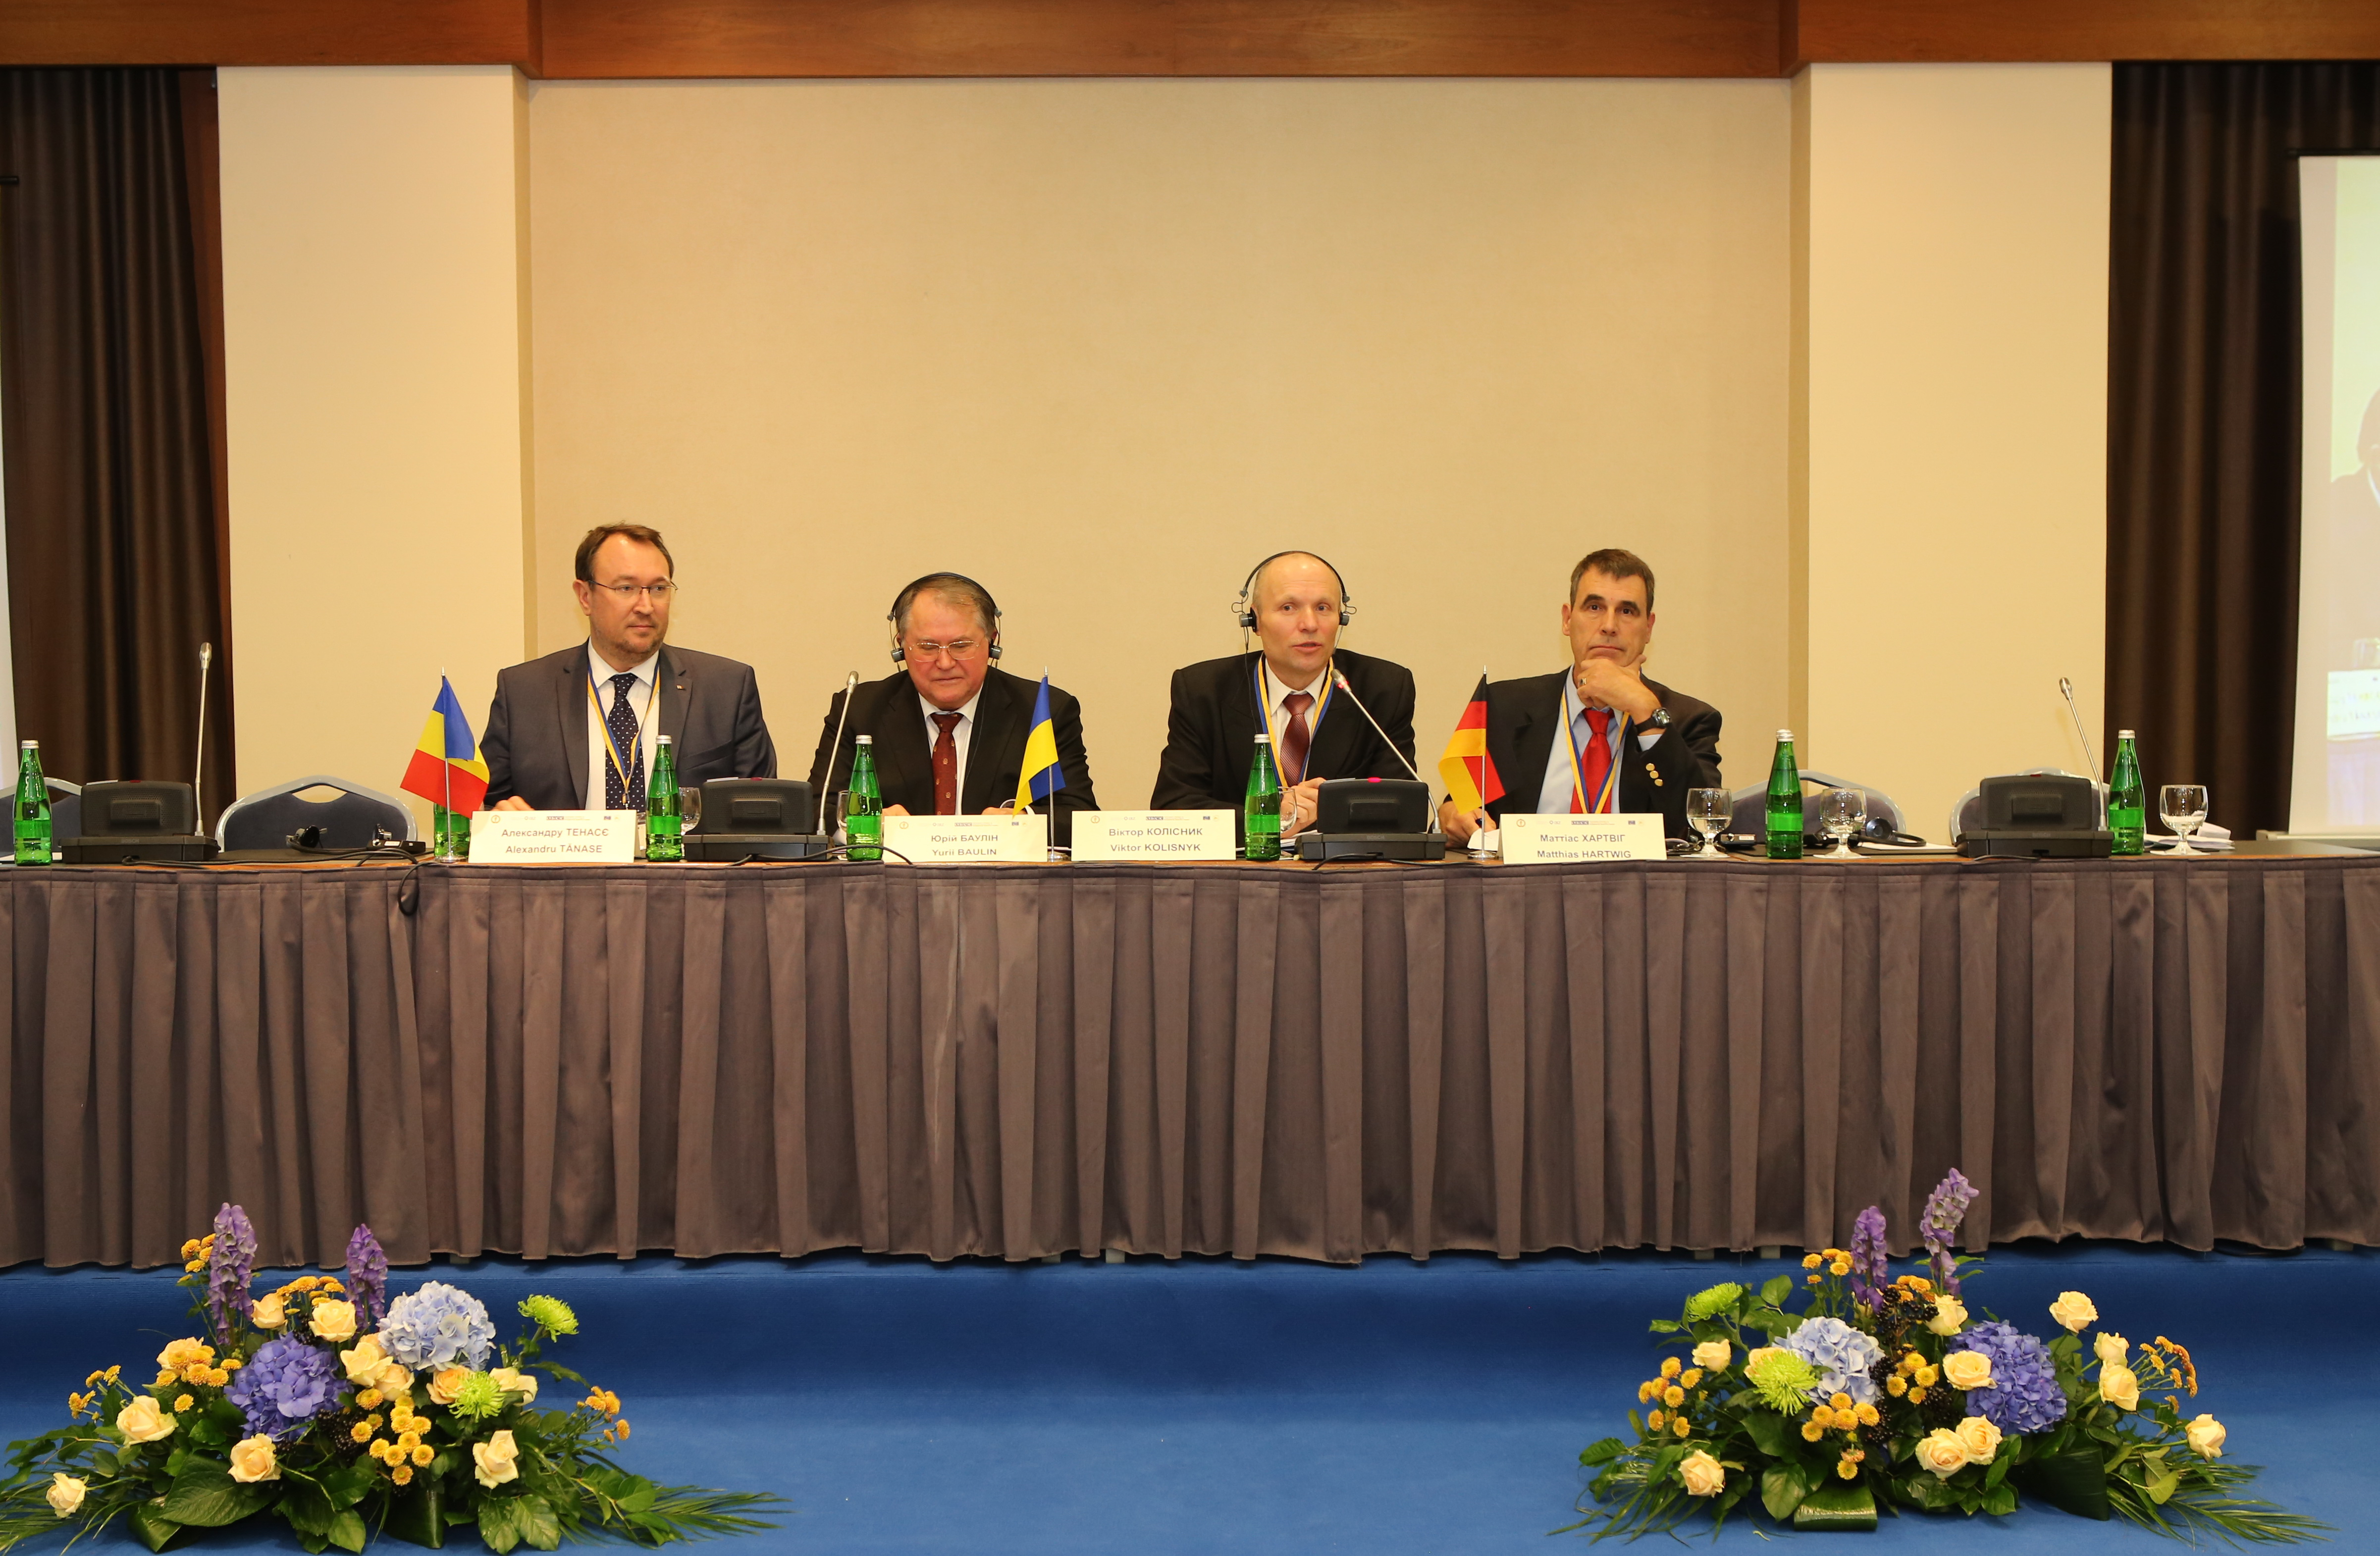 Alexandru Tanase, President of the Constitutional Court of the Republic of Moldova; Yurii Baulin, Chairman of the Constitutional Court of Ukraine; Victor Kolisnyk, Judge of the Constitutional Court of Ukraine; Matthias Hartwig, Max Planck Institute for Comparative Public Law and International Law (left to right).